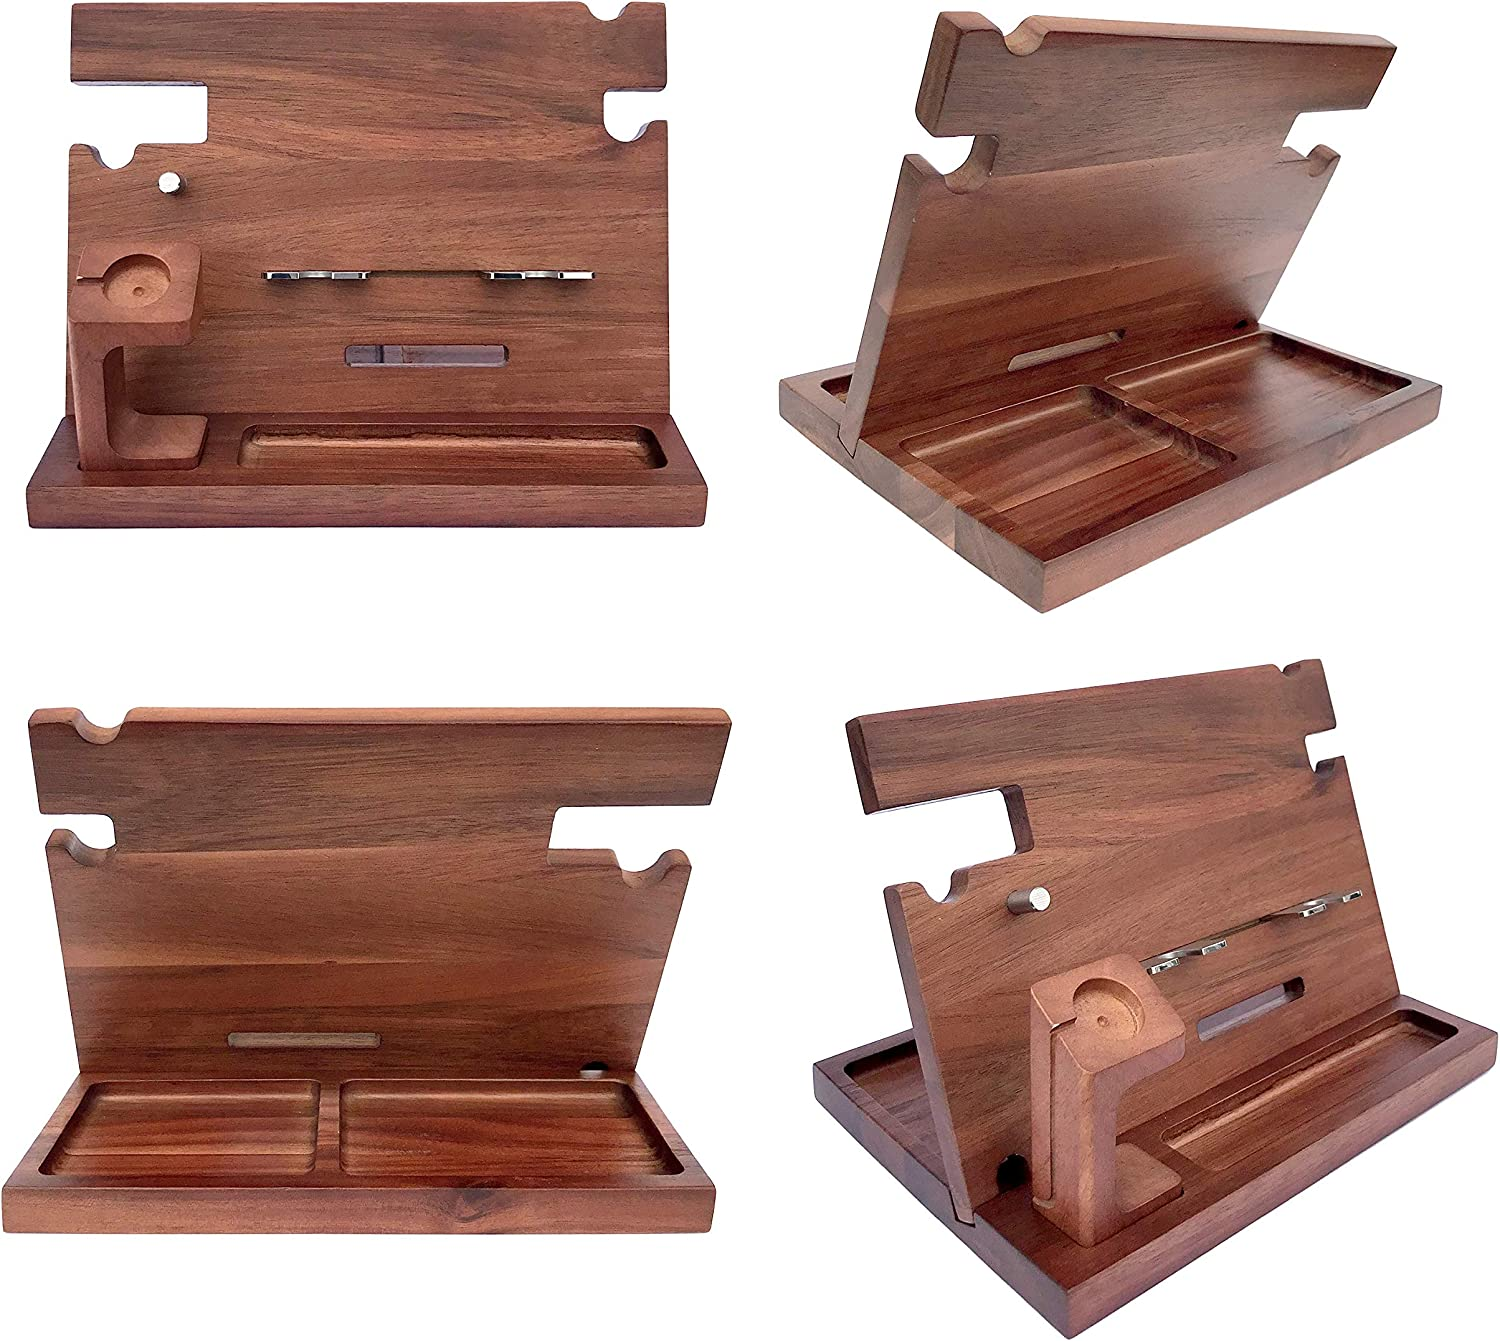 Tablet Stand for Dad Nightstand Organizer Bundle w//RFID Blocking Leather Wallet Husband Gifts from Wife Eterluck Wooden Docking Station Men Walnut Cell Phone Stand Charging Station